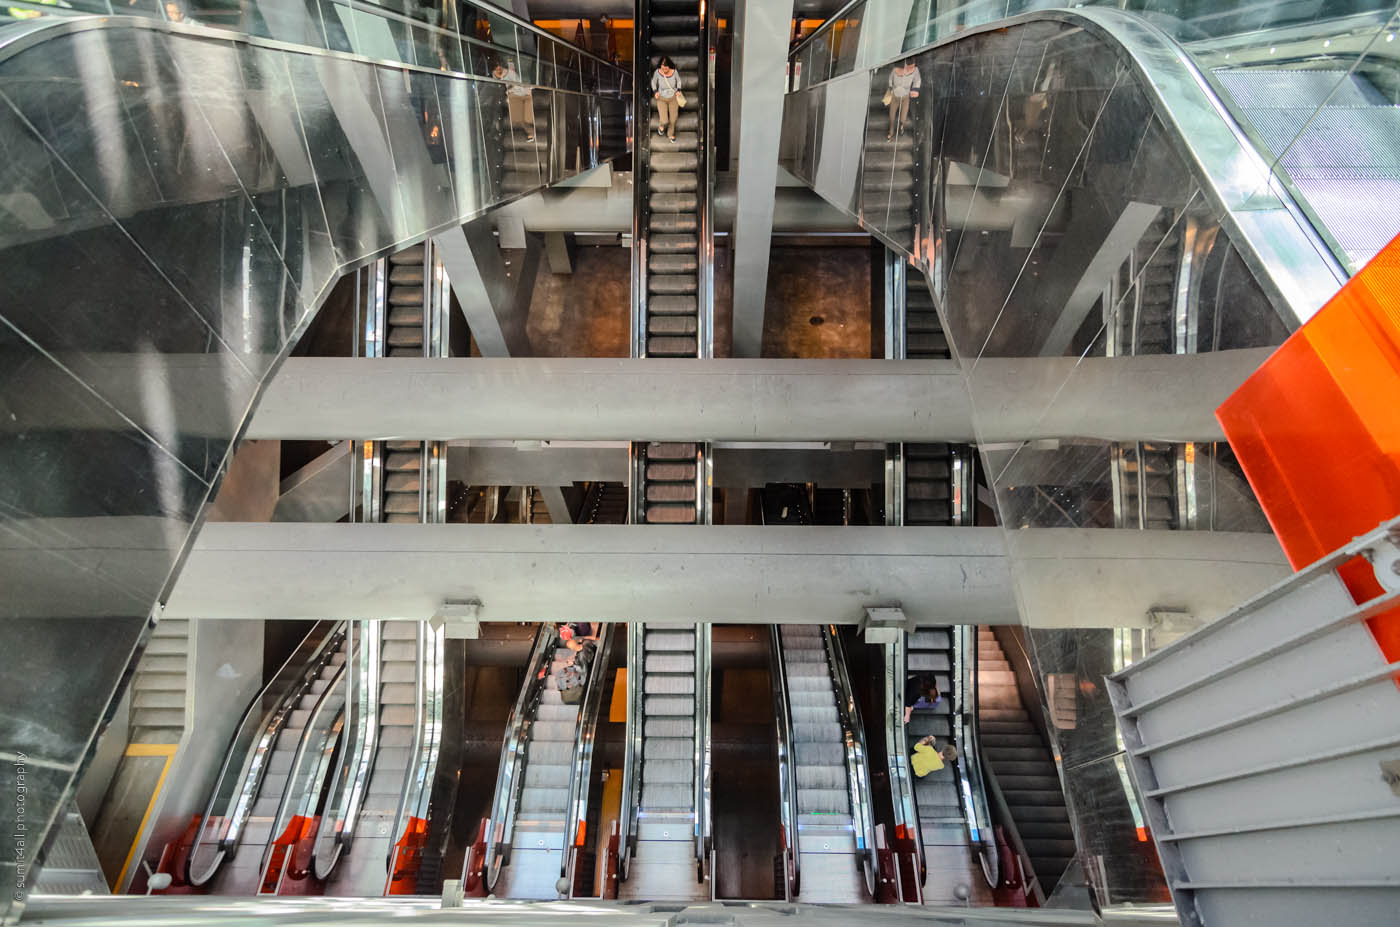 Escalators at Garibaldi Metro Station in Naples